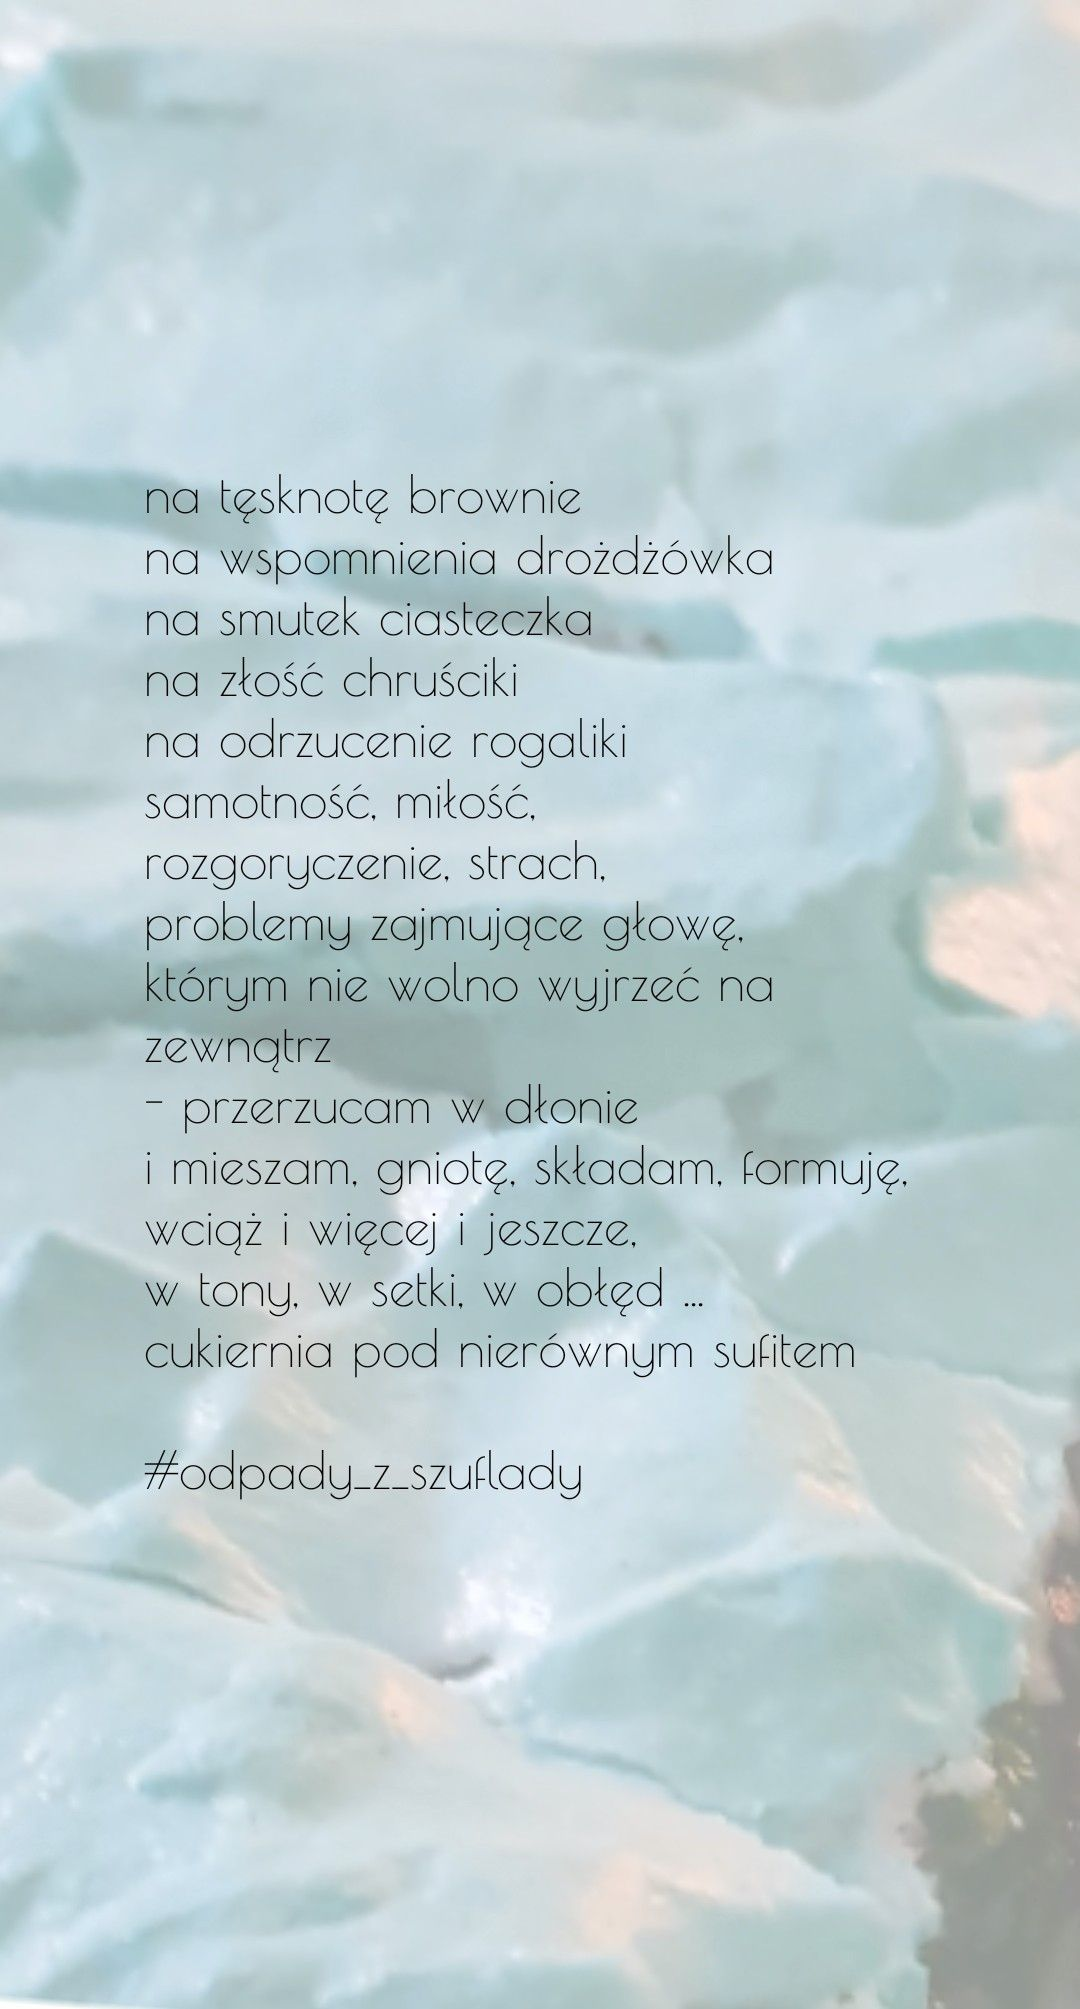 Pin By Joanna K On Poezja Wiersze Poetry Poems